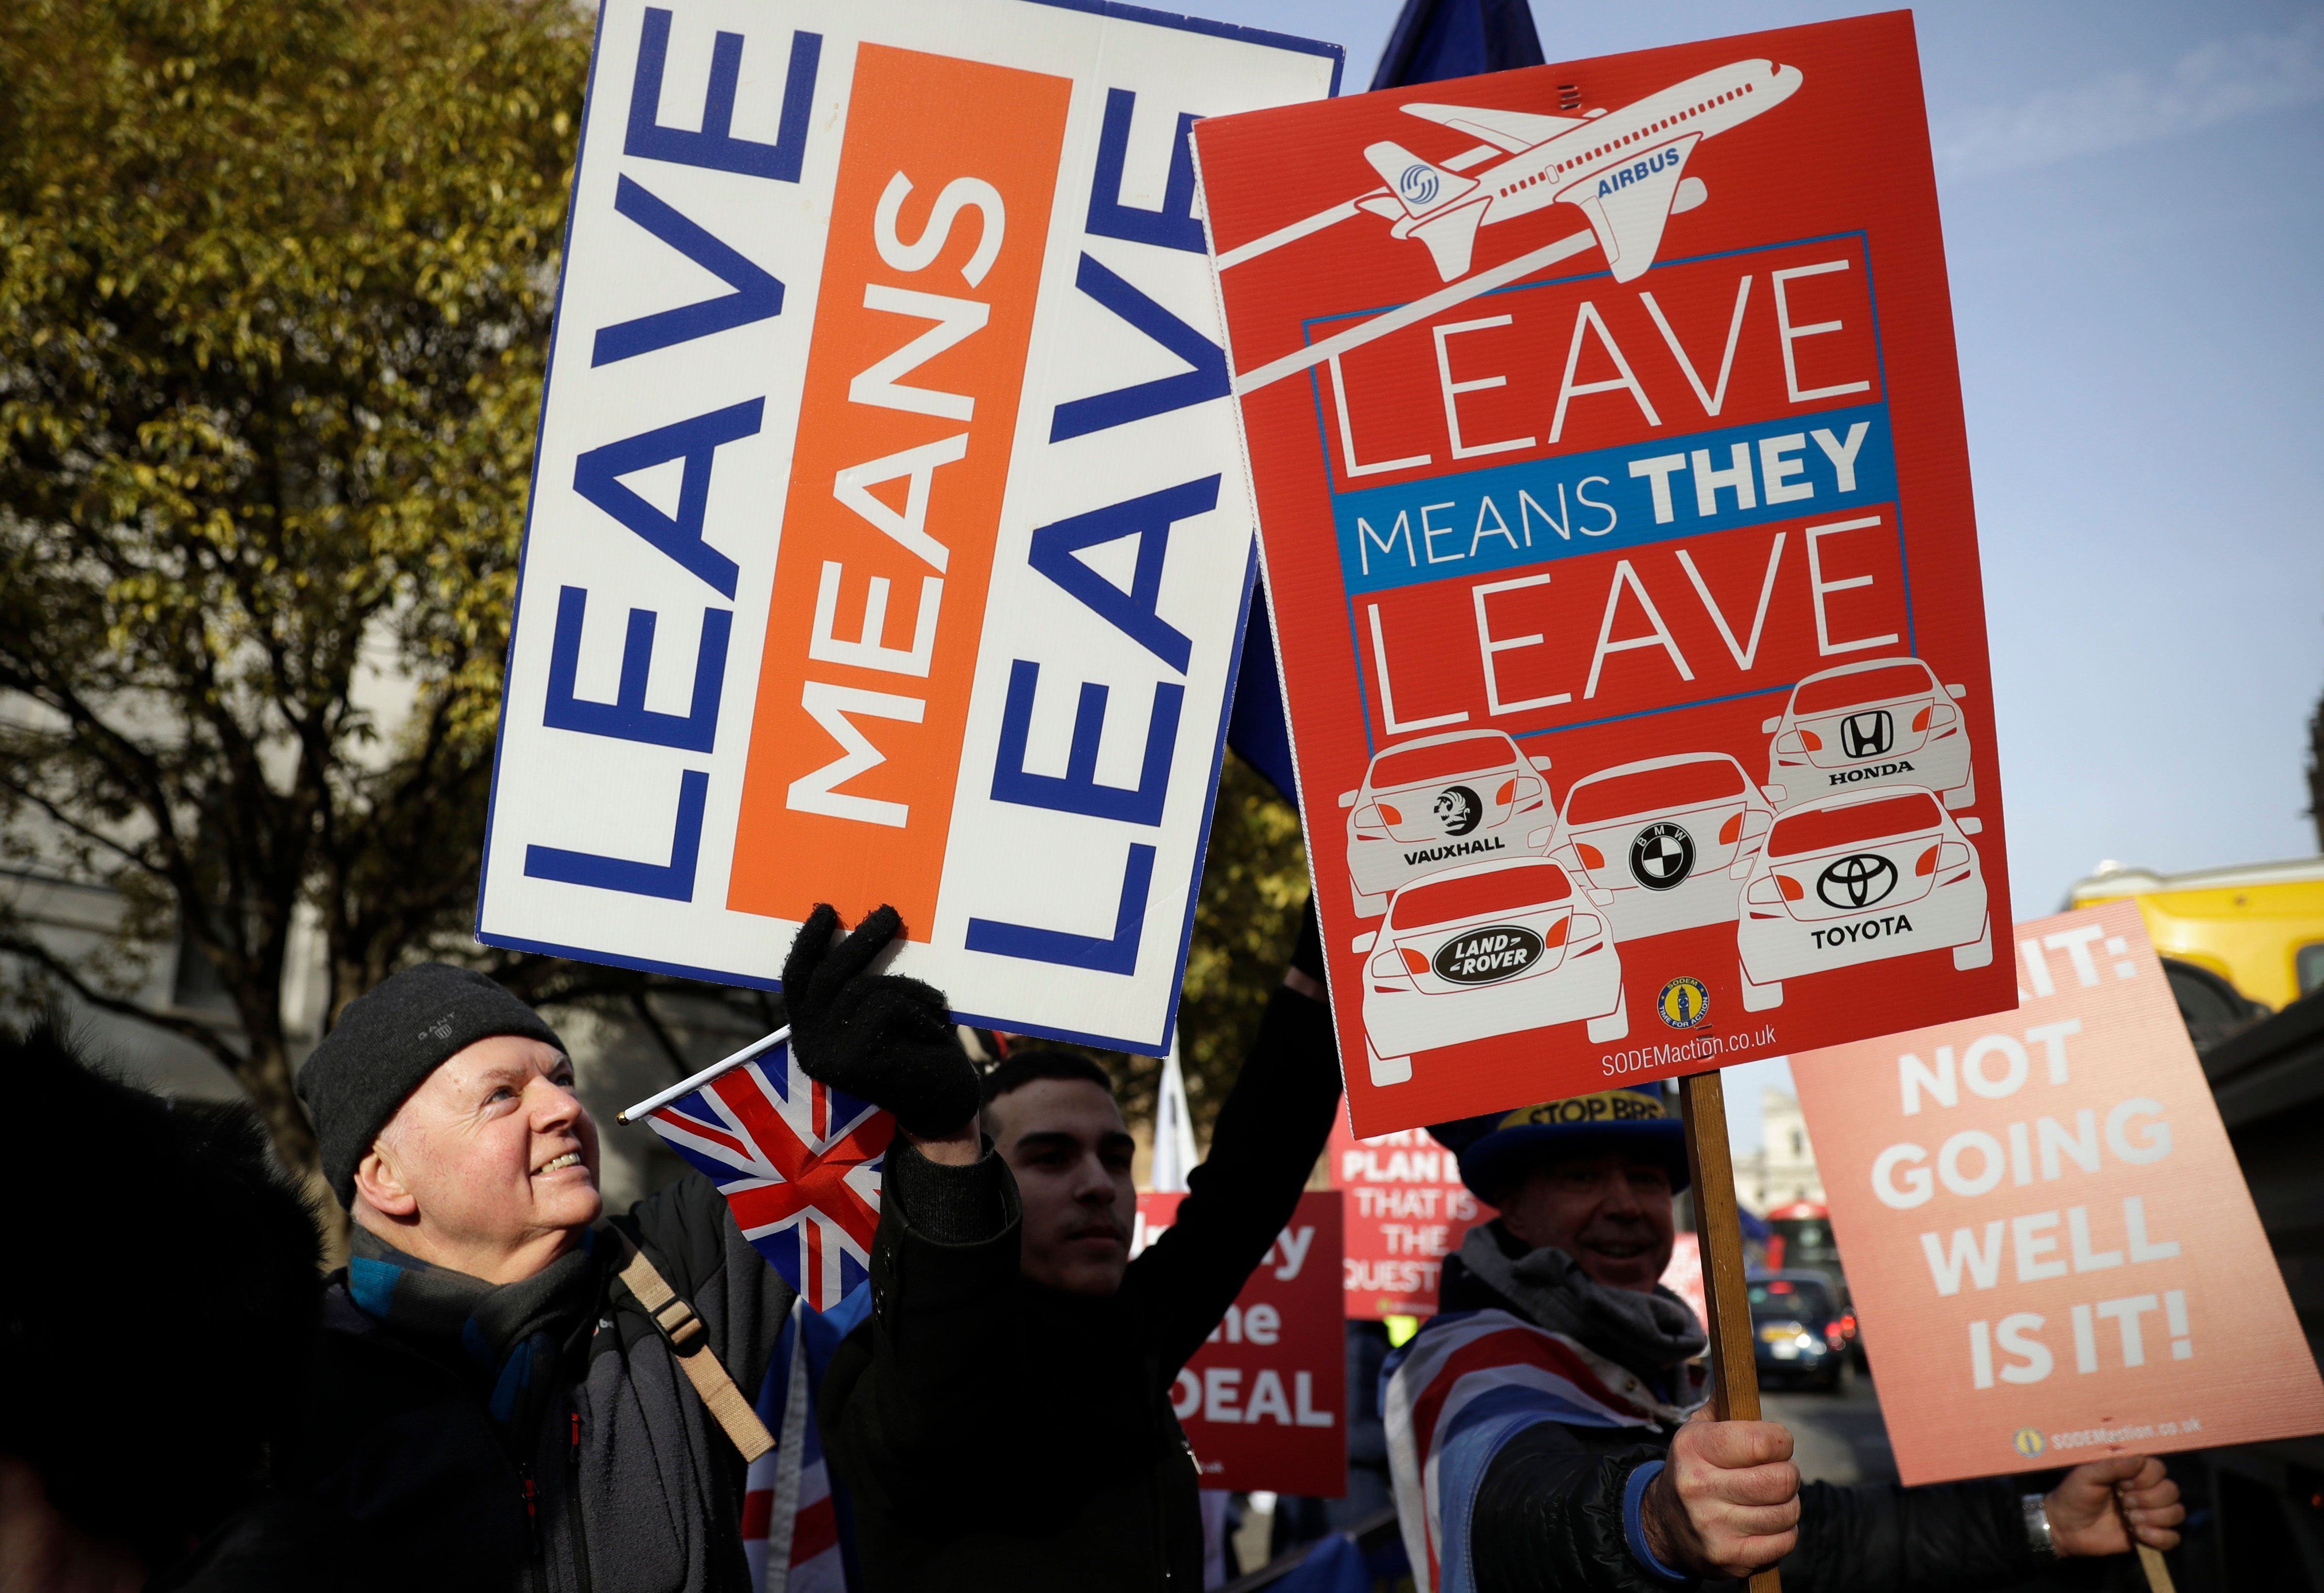 Pro-Brexit, left and anti-Brexit protesters hold banners in London, Tuesday, Jan. 29, 2019. With Britain's House of Commons bitterly divided on the way forward for Britain's departure from the European Union, lawmakers representing various factions are vying to have their say in the Brexit process after they overwhelmingly rejected the government's divorce agreement two weeks ago. (AP Photo/Matt Dunham)